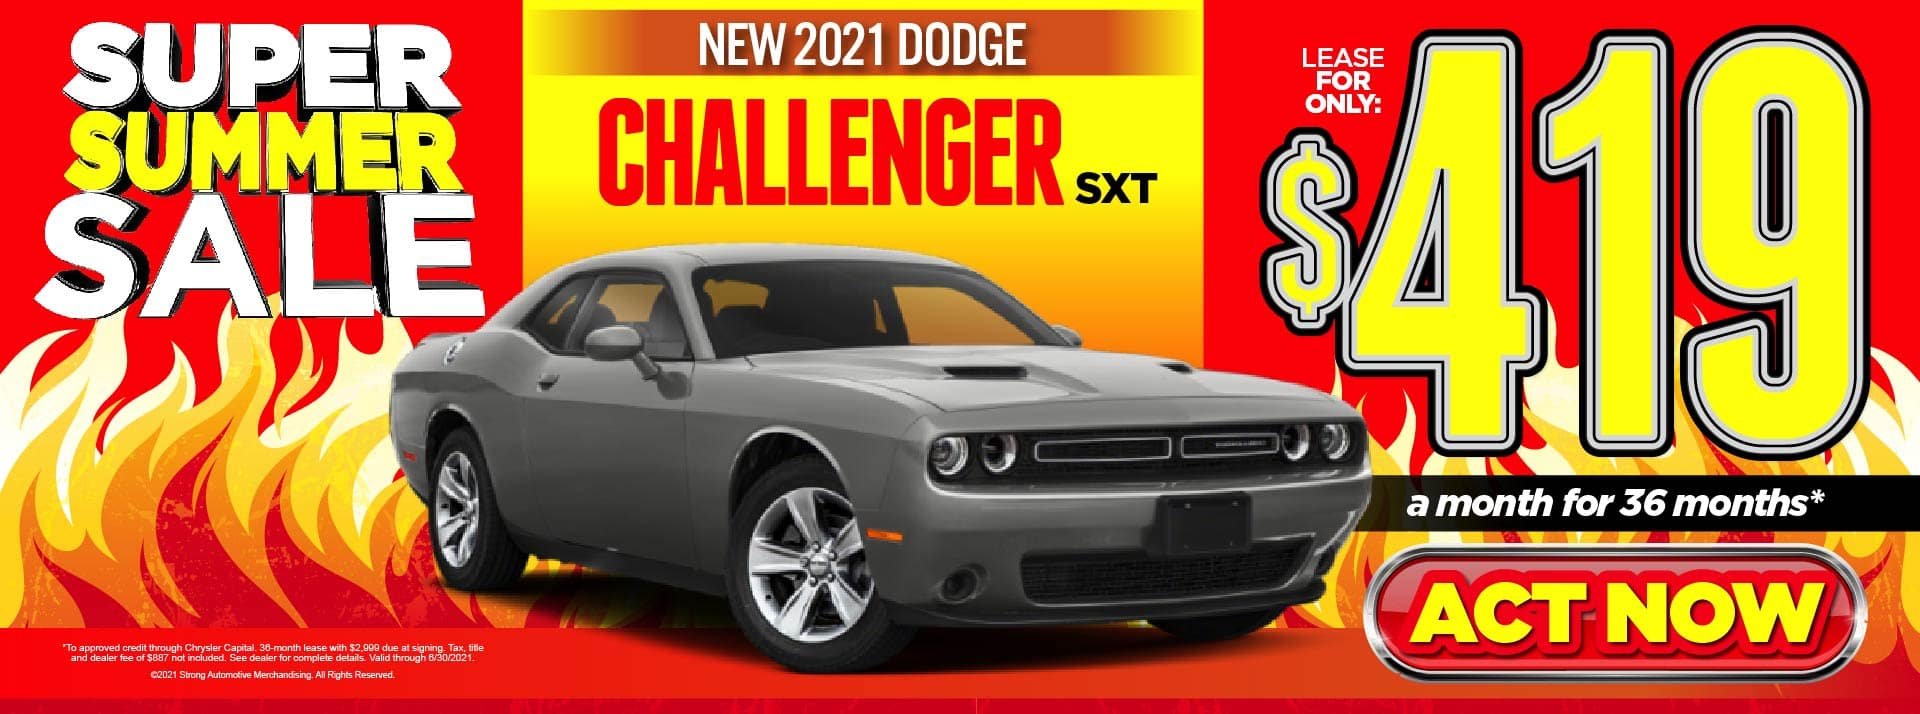 NEW 2021 DODGE CHALLENGER SXT LEASE FOR $419/MO* ACT NOW